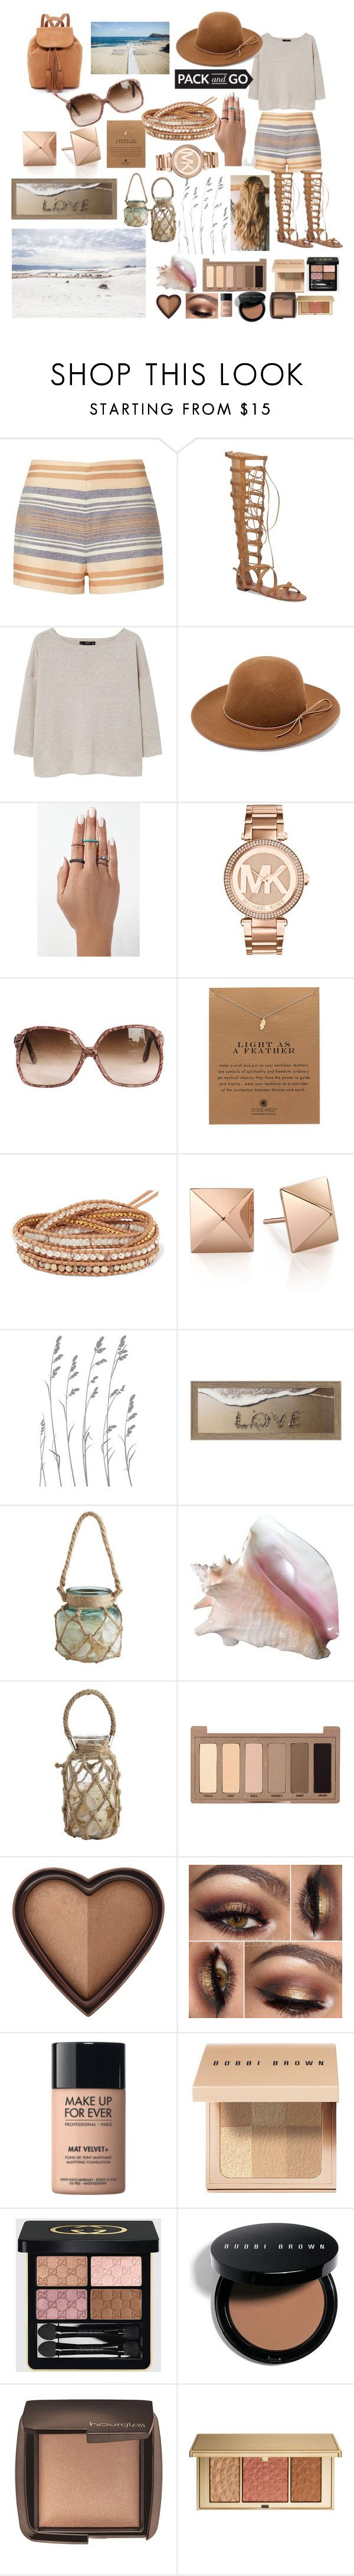 """pack&go mexico"" by manderzlmao ❤ liked on Polyvore featuring Solid & Striped, Vince Camuto, MANGO, RHYTHM, Michael Kors, Dogeared, Chan Luu, Dot & Bo, Pier 1 Imports and Urban Decay"